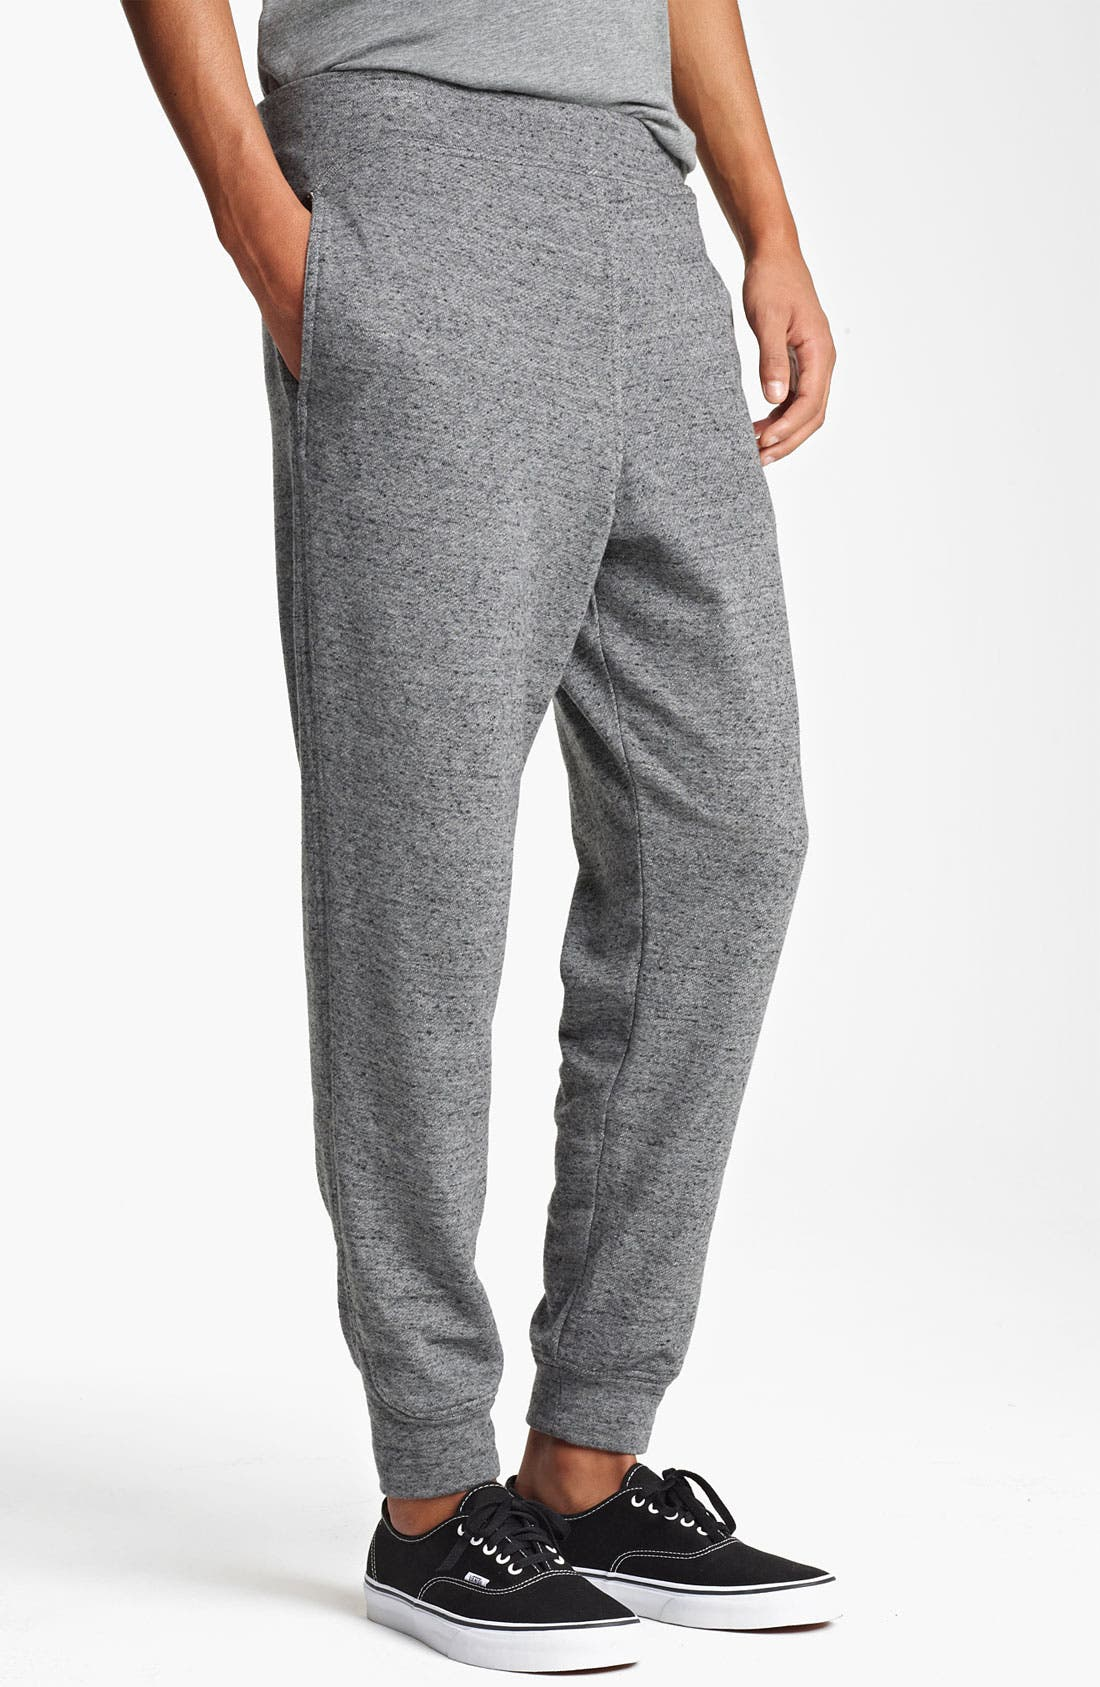 Alternate Image 1 Selected - T by Alexander Wang French Terry Cotton Sweatpants